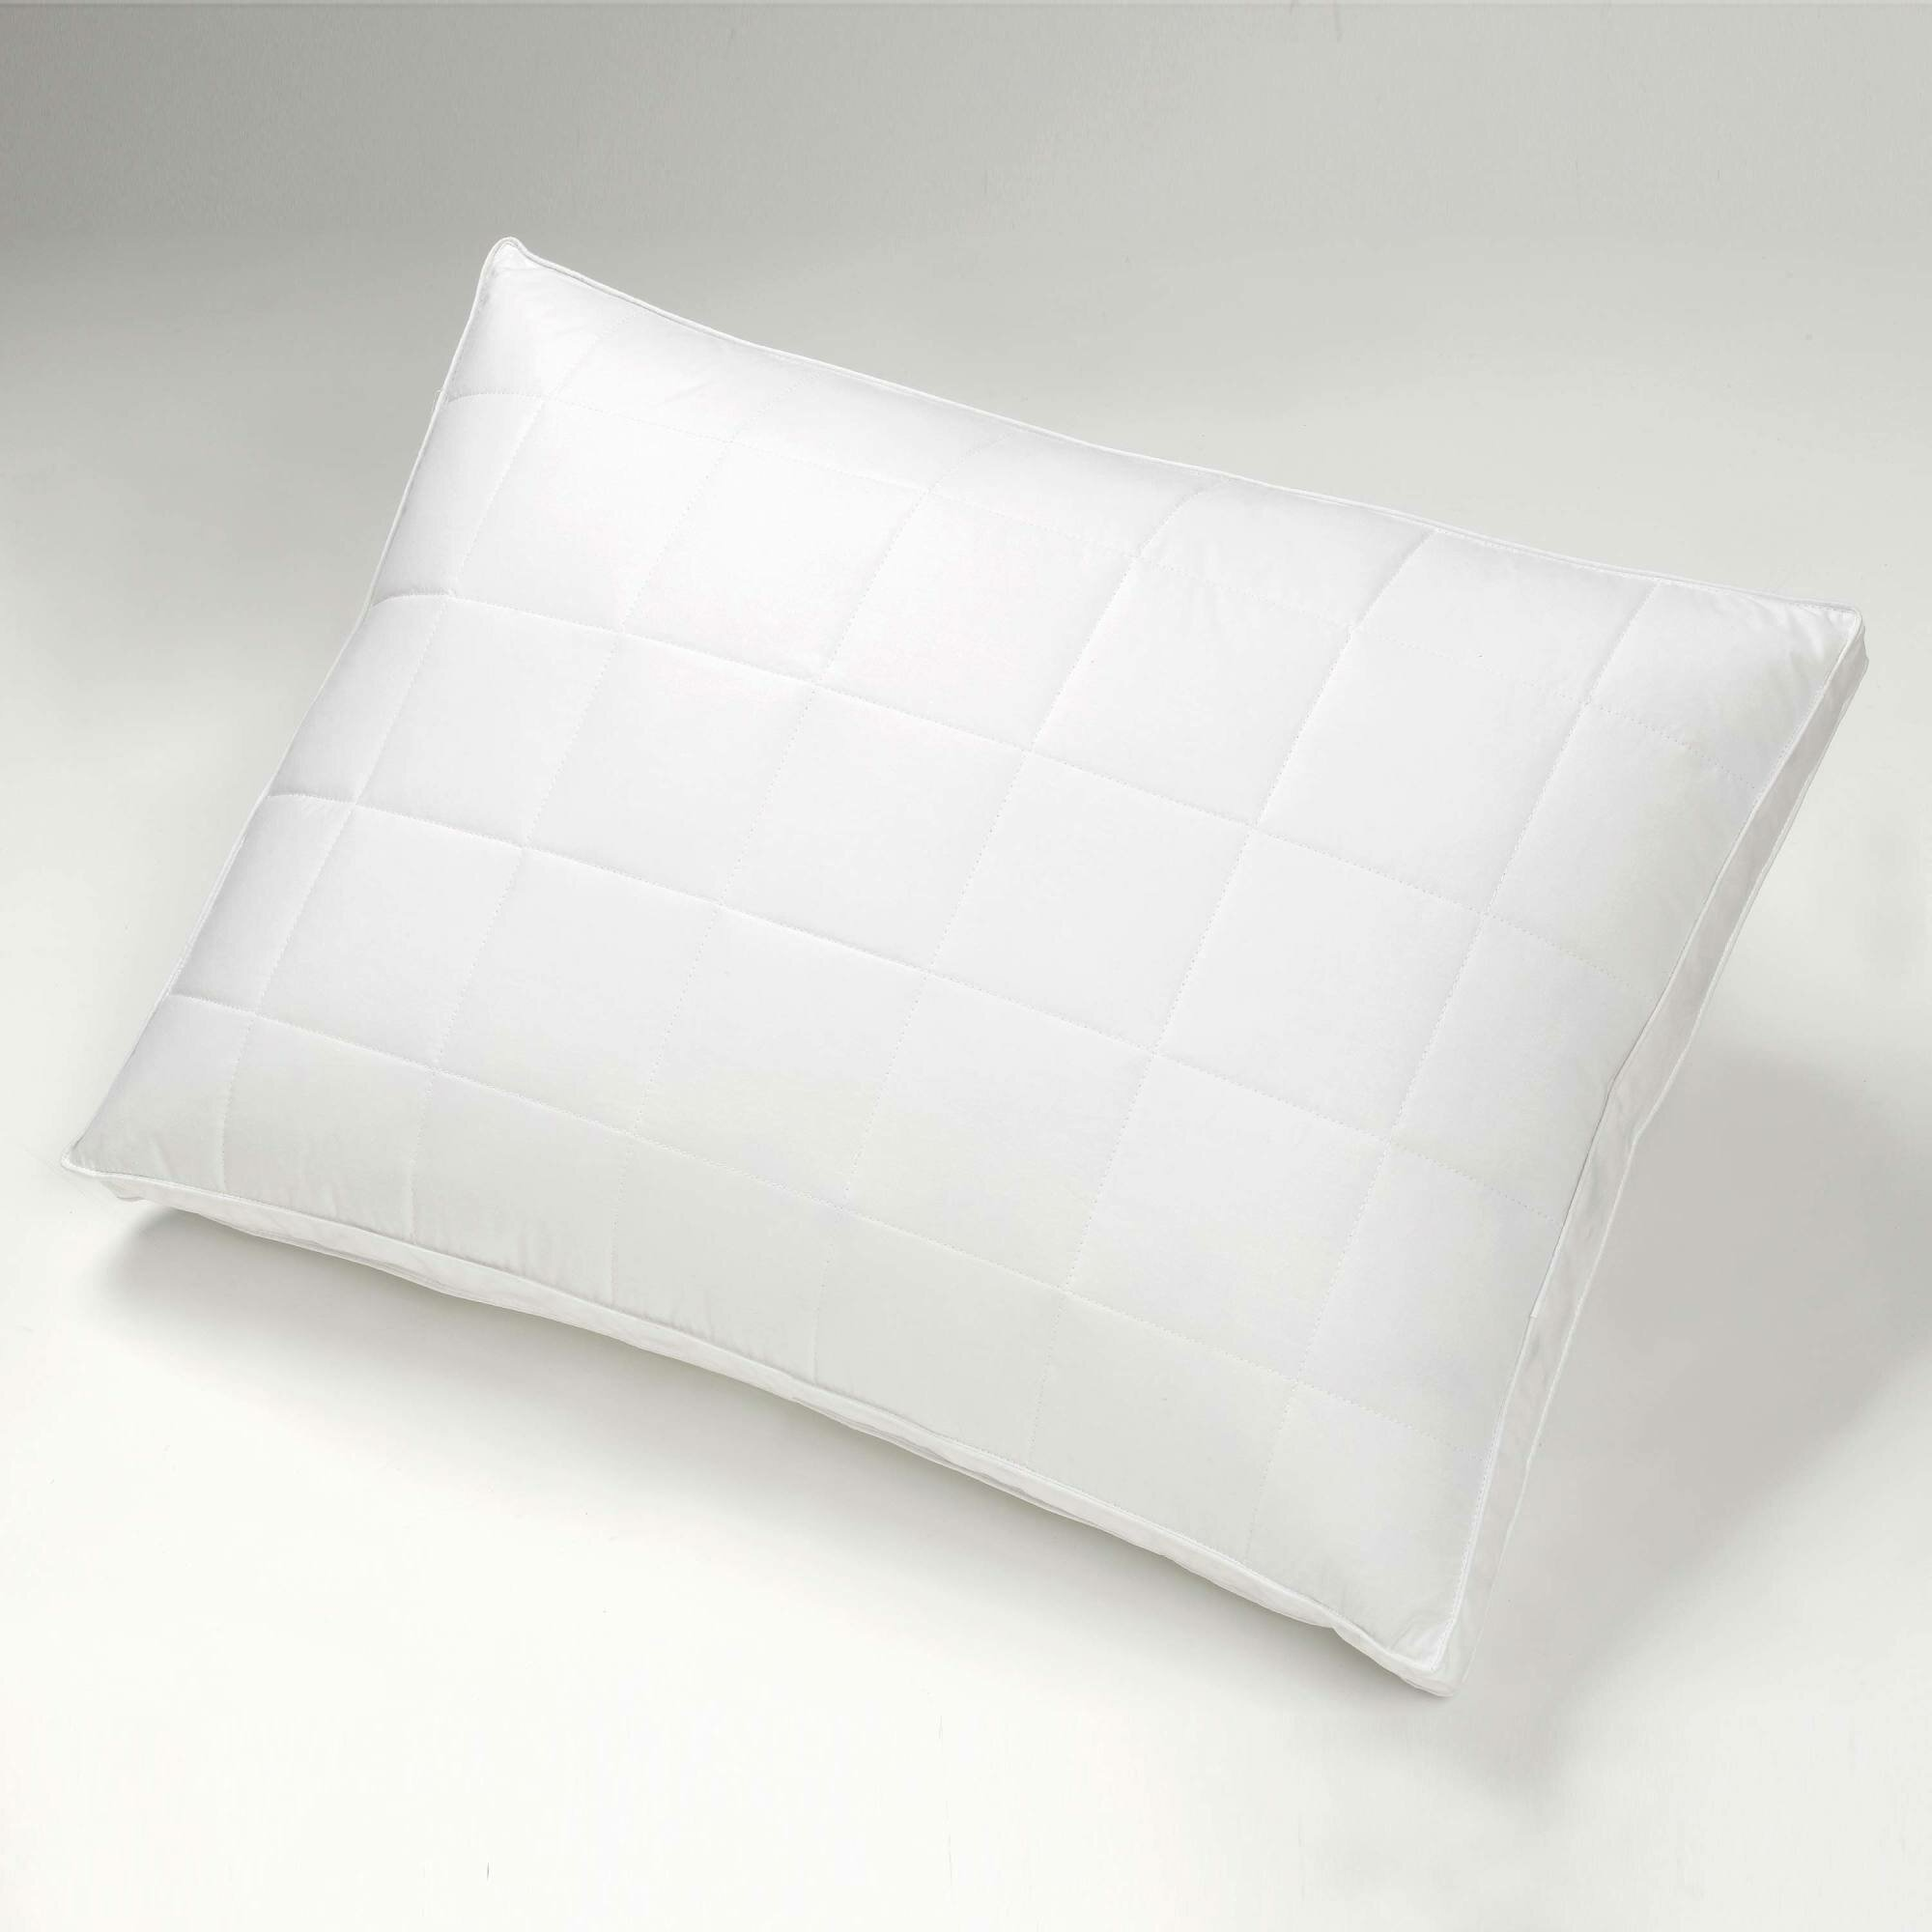 Izod Quilted Down And Feather Super Standard Pillow Reviews Wayfair